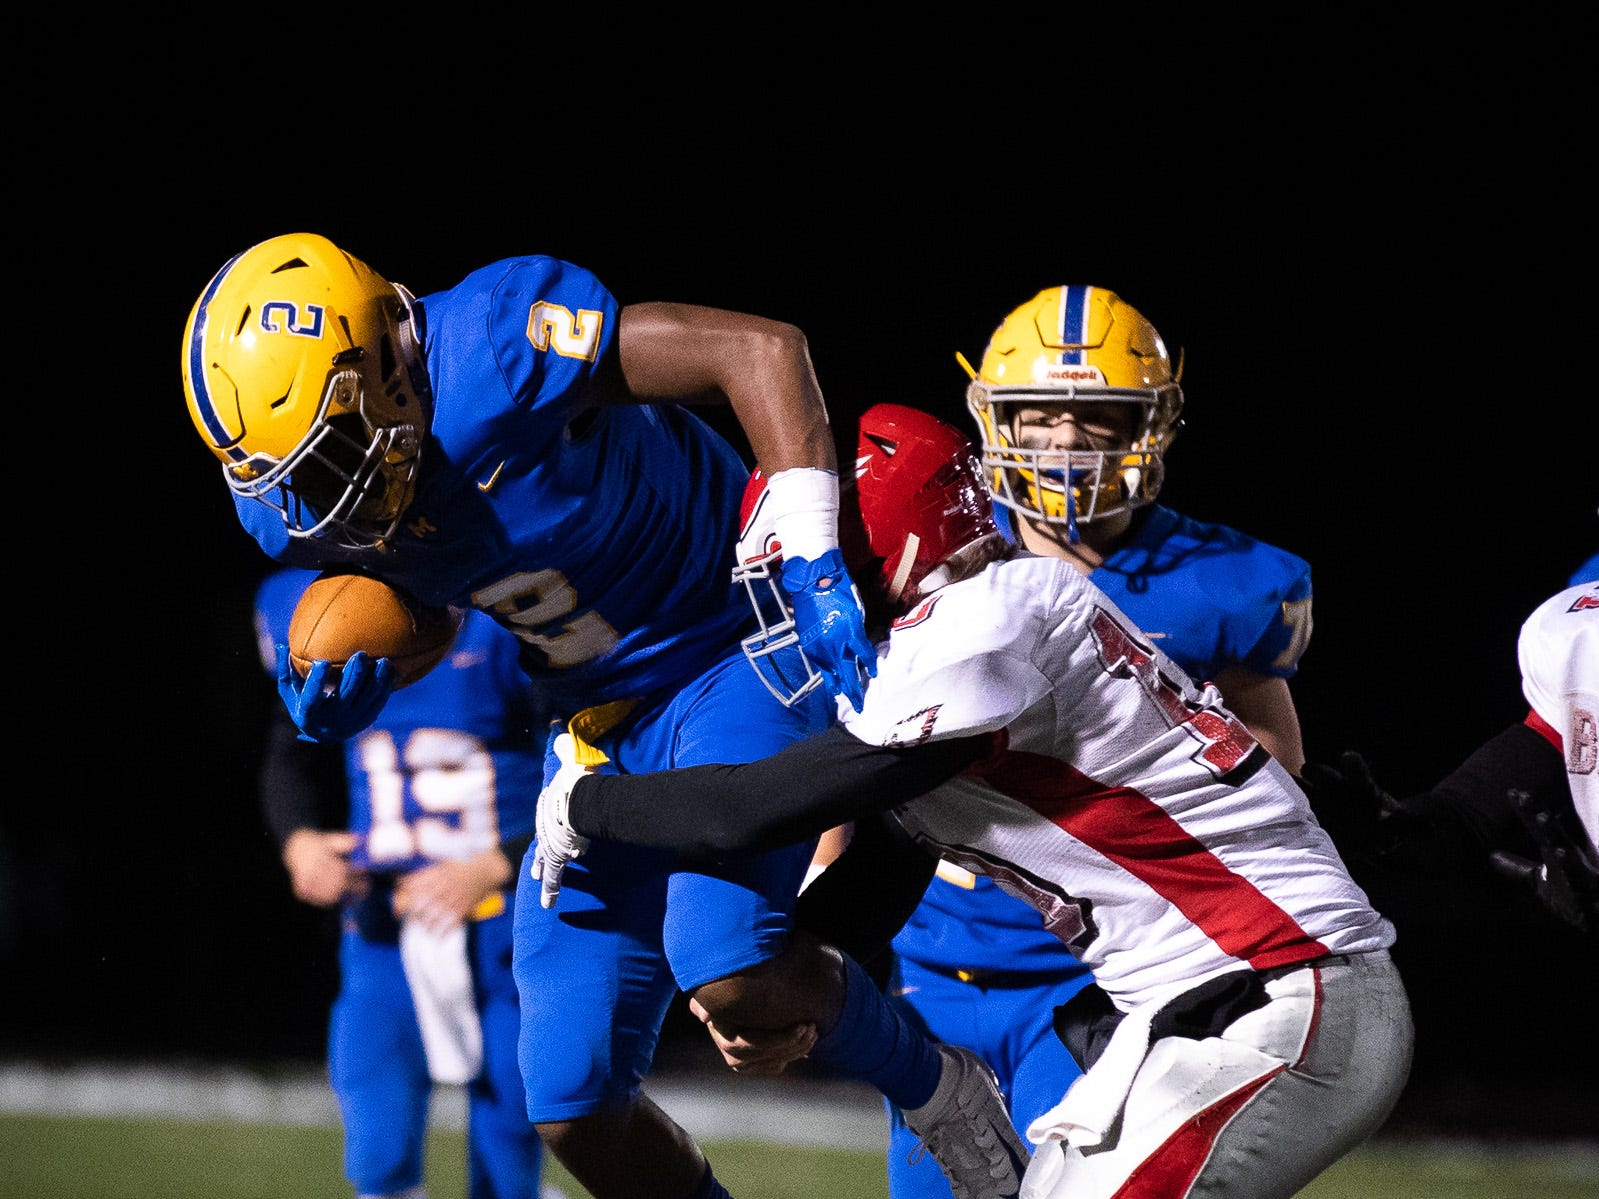 Middletown's Richie Sykes (2) leaps away from Bermudian Springs' Chase Dull (10) during the second half of the District 3 Class 3A championship game between Bermudian Springs and Middletown, Saturday, Nov. 17, 2018, at Cedar Crest High School. The Middletown Raiders defeated the Bermudian Springs Eagles 41-20 to win the title.